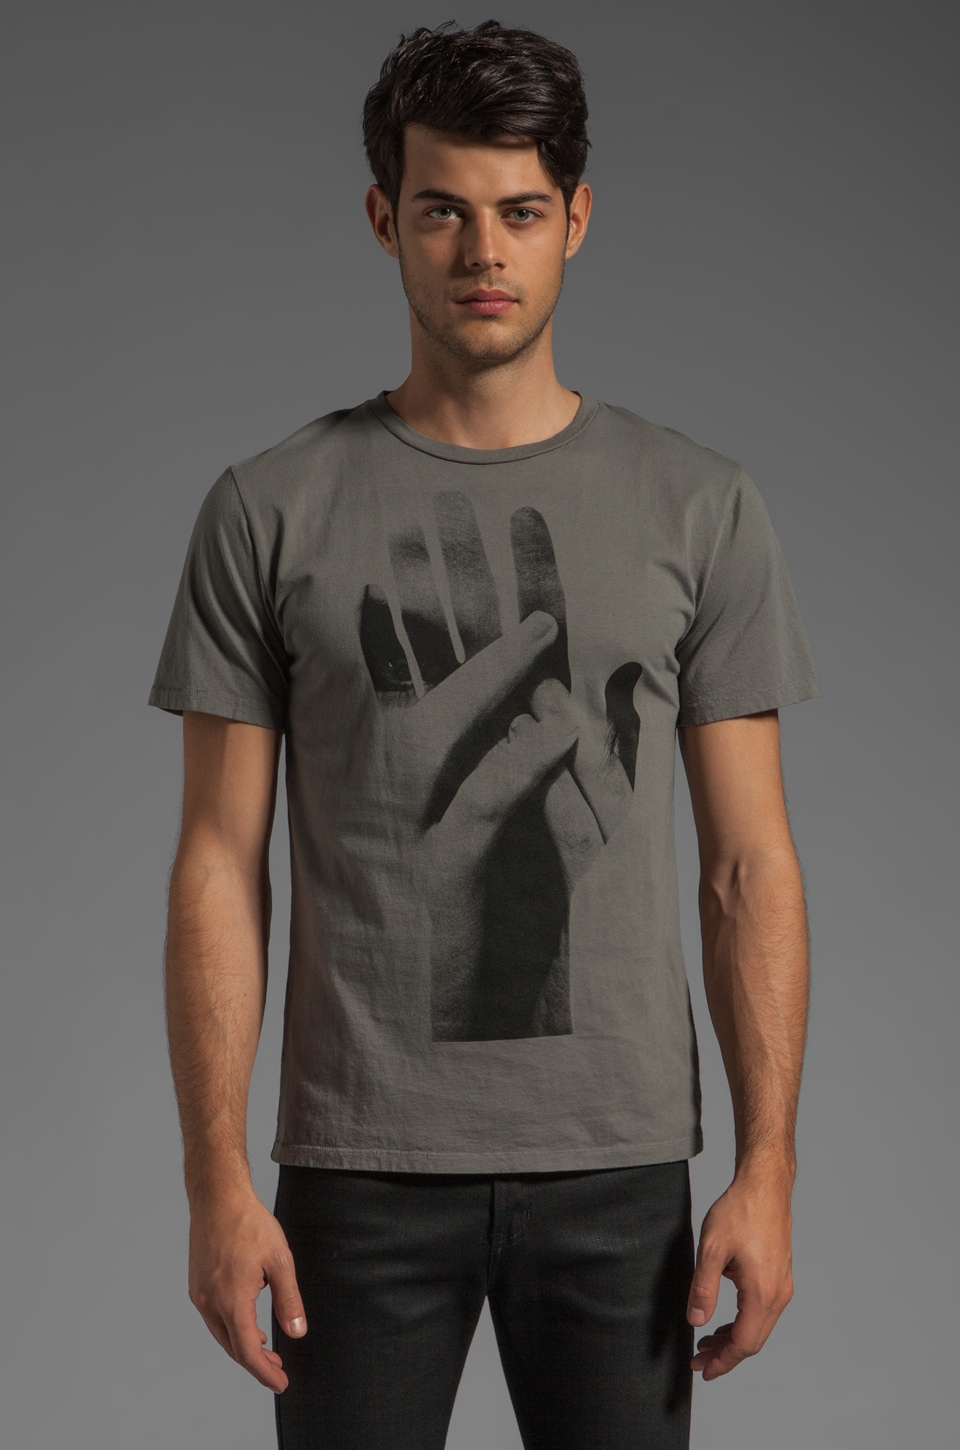 BLOOD IS THE NEW BLACK Holding Hands MC Tee in Charcoal Grey